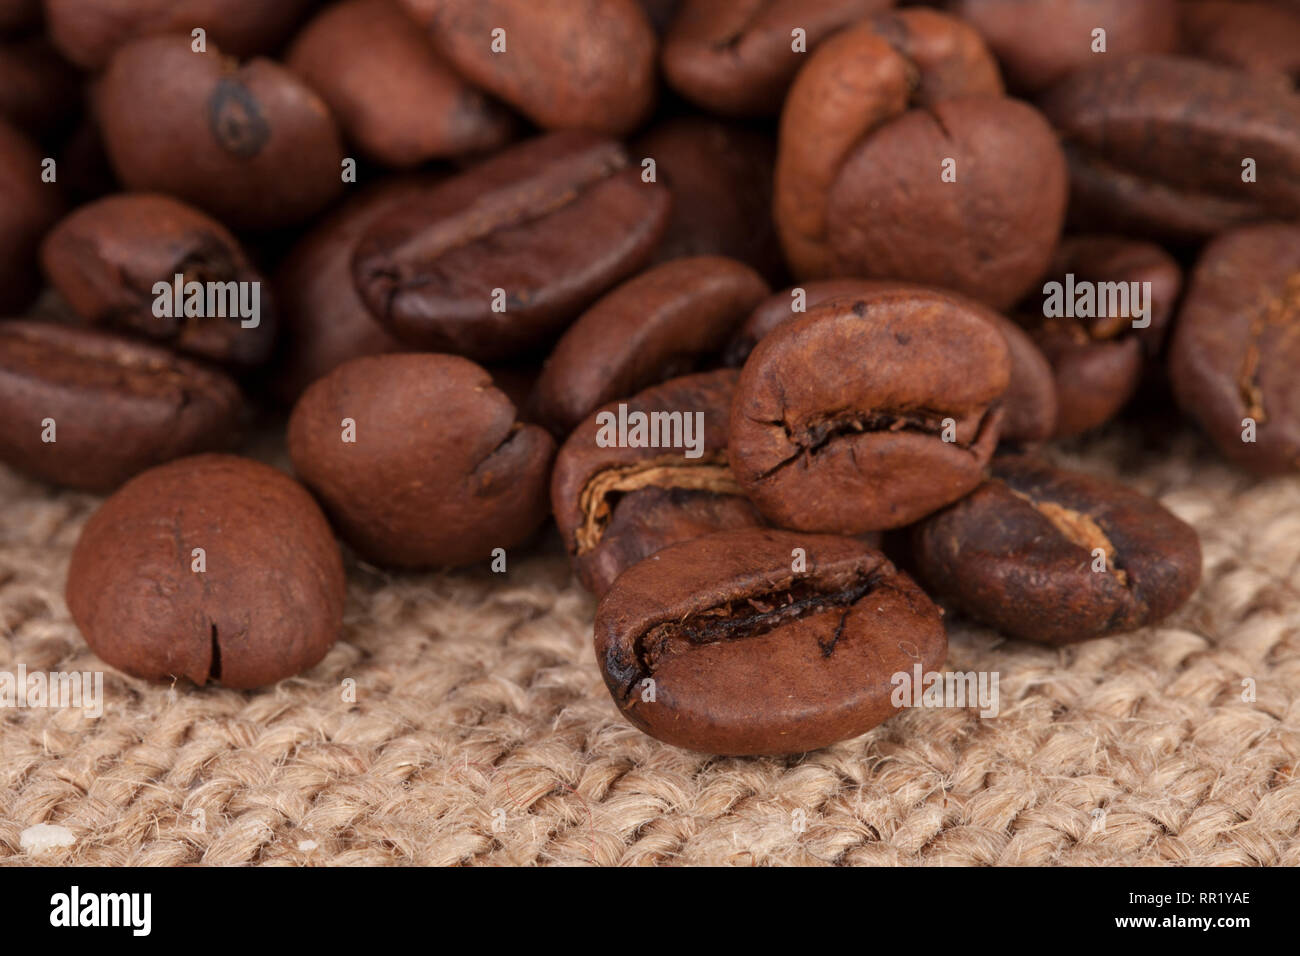 coffee beans on sackcloth close-up macro - Stock Image